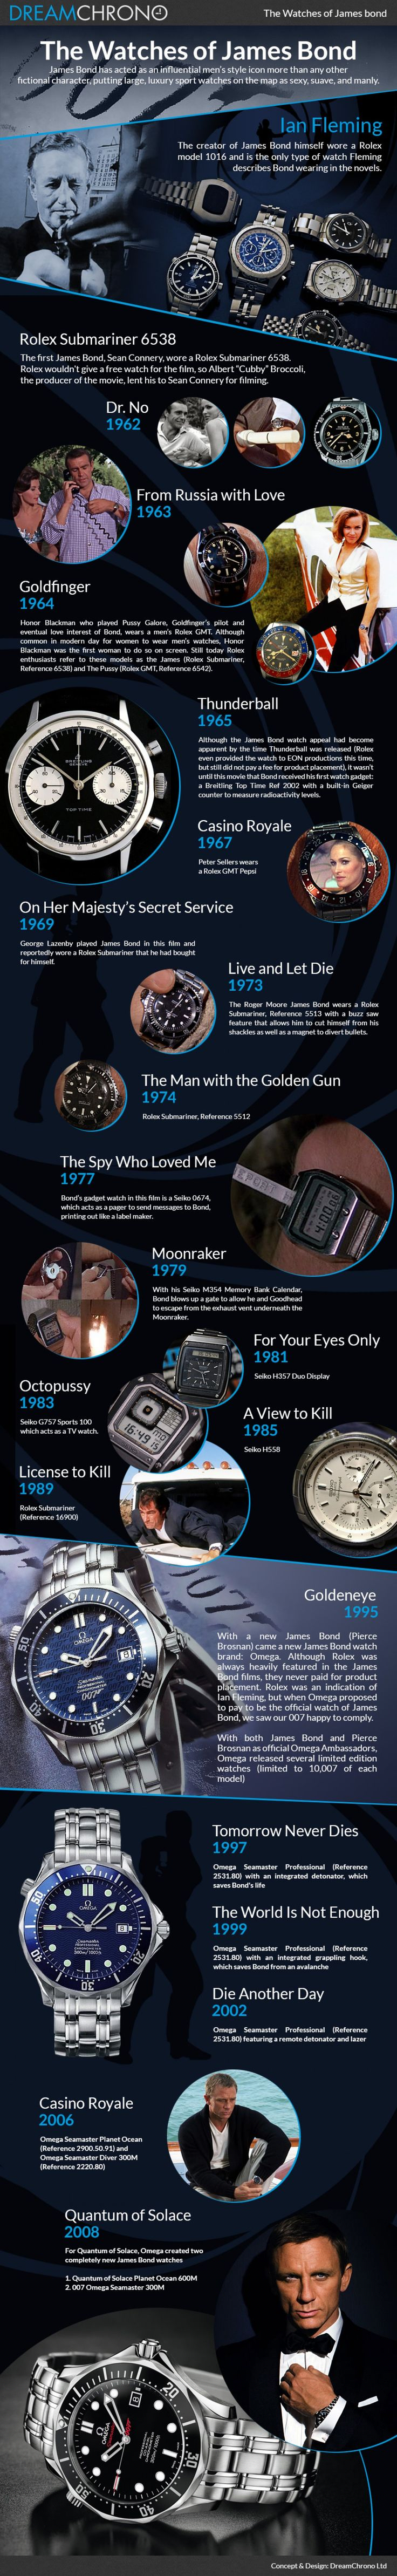 The Watches of James Bond Infographic Infographic